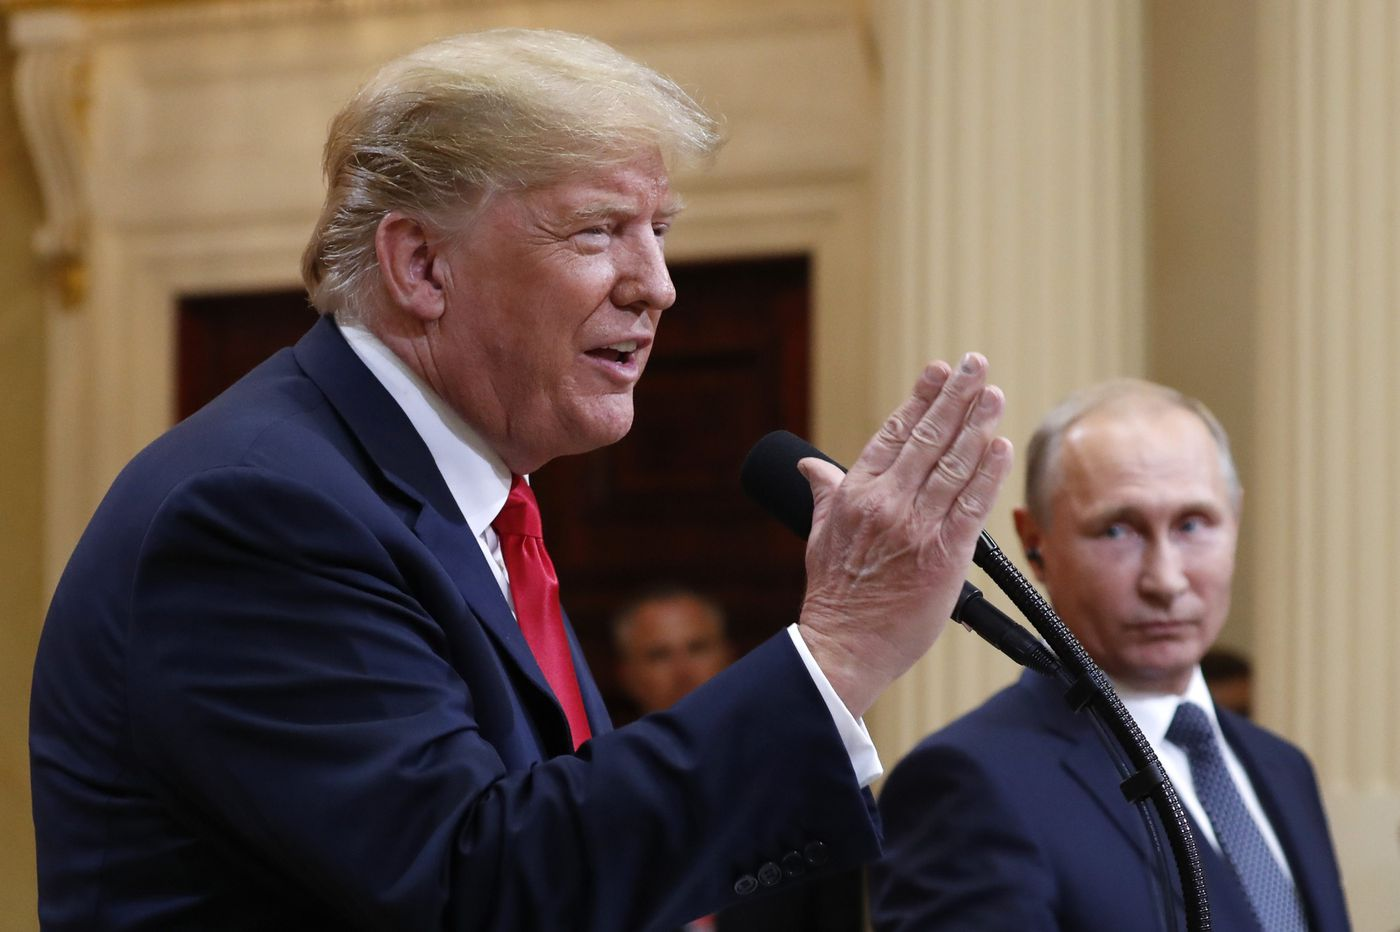 Democrats in key races say Russia comments show need for a check on Trump in Congress